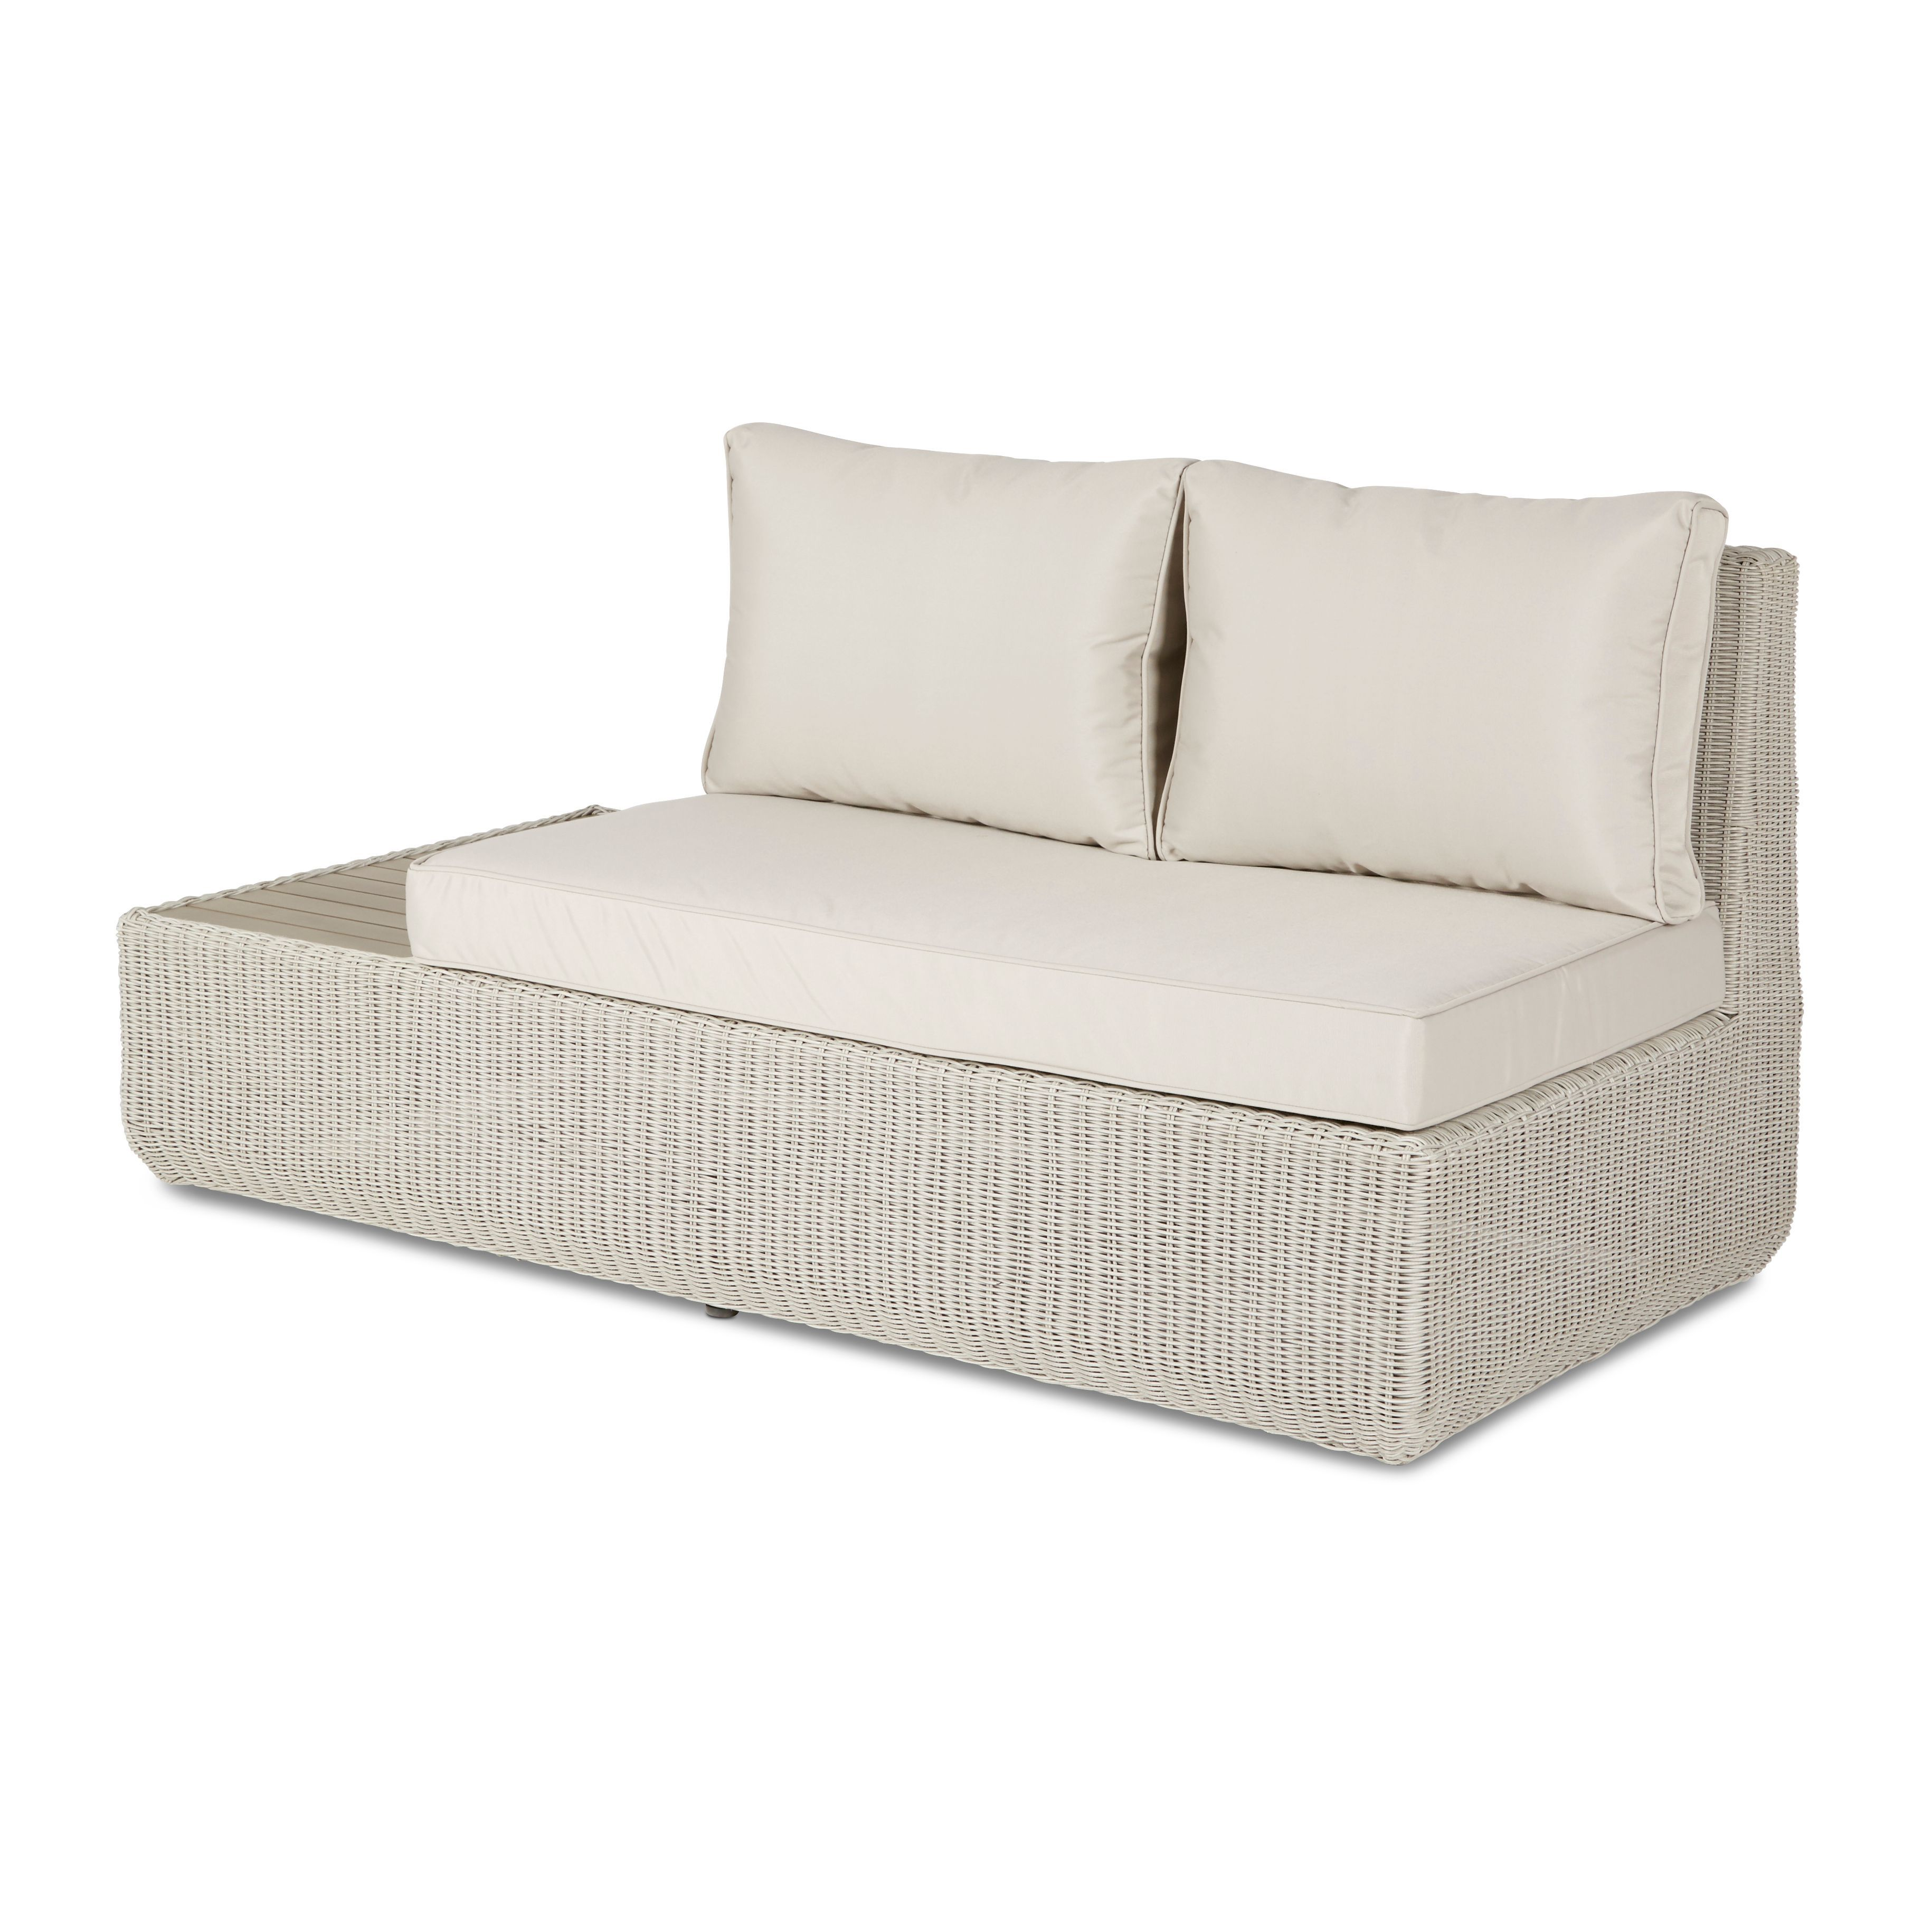 Rocha Rattan 2 Seat Sofa   Bu0026Q For All Your Home And Garden Supplies And  Advice